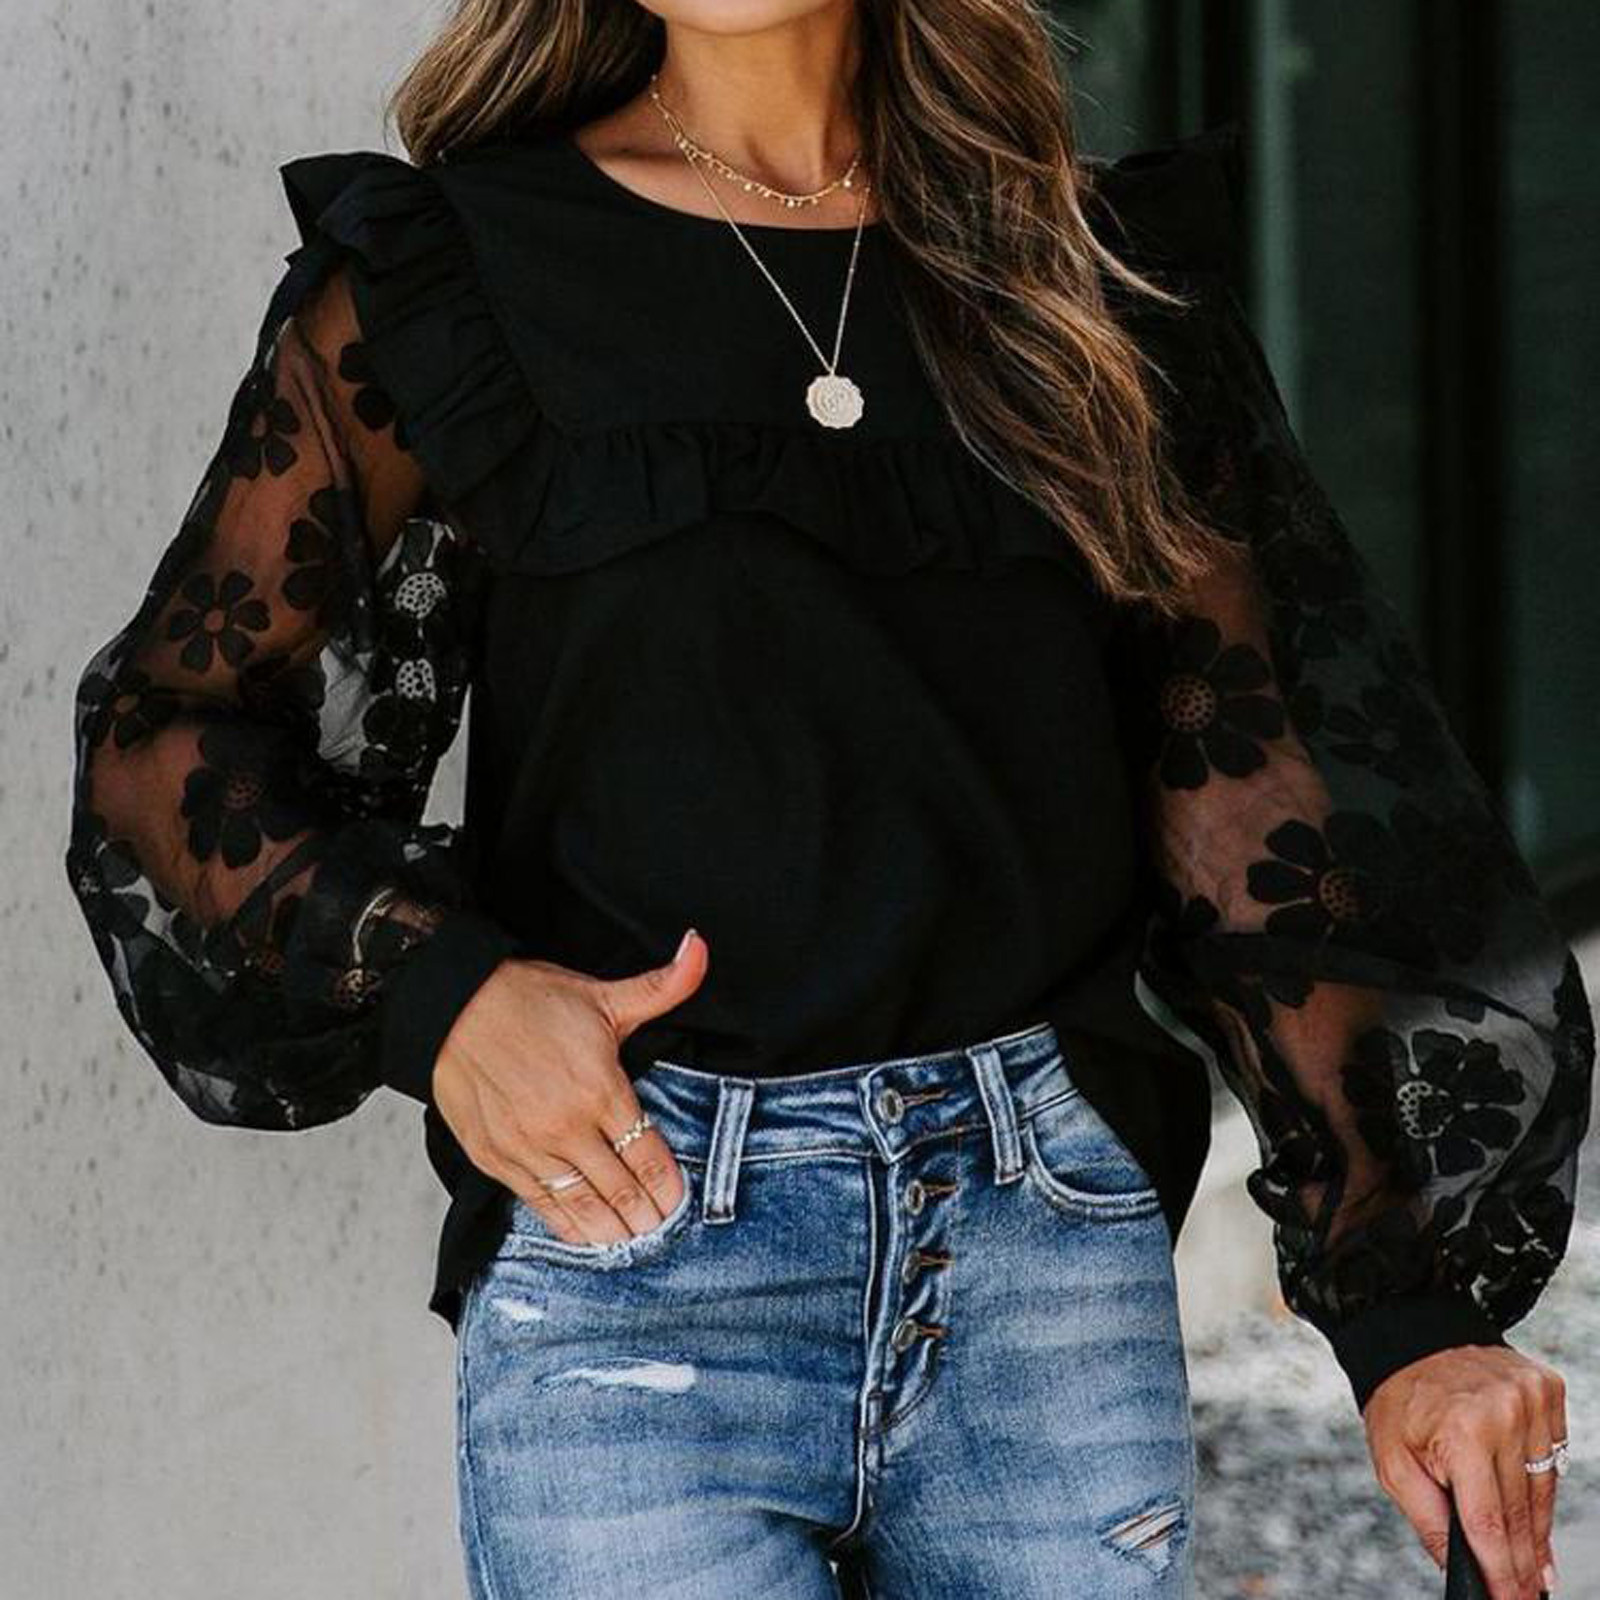 40# Women's Ruffle Blouses tops Net yarn Round Neck Lace Patchwork Long Sleeve Blouses Top Mesh Gauze sexy Retro Shirts рубашка